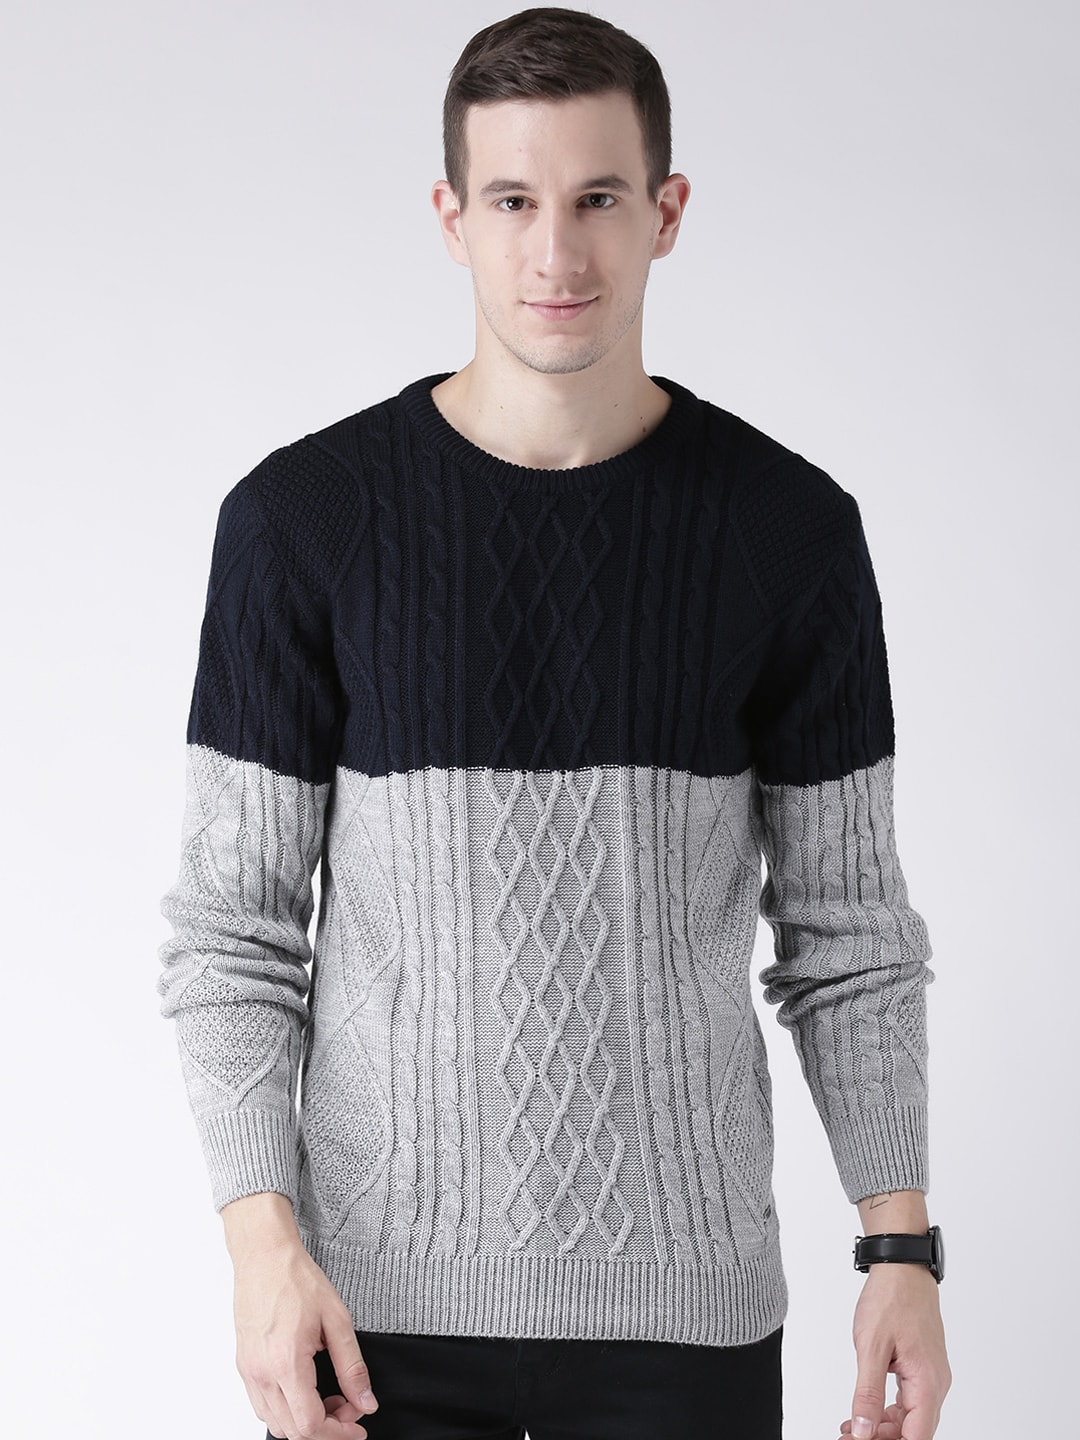 d4420f92e4 Knitted Sweaters - Buy Knitted Sweaters online in India